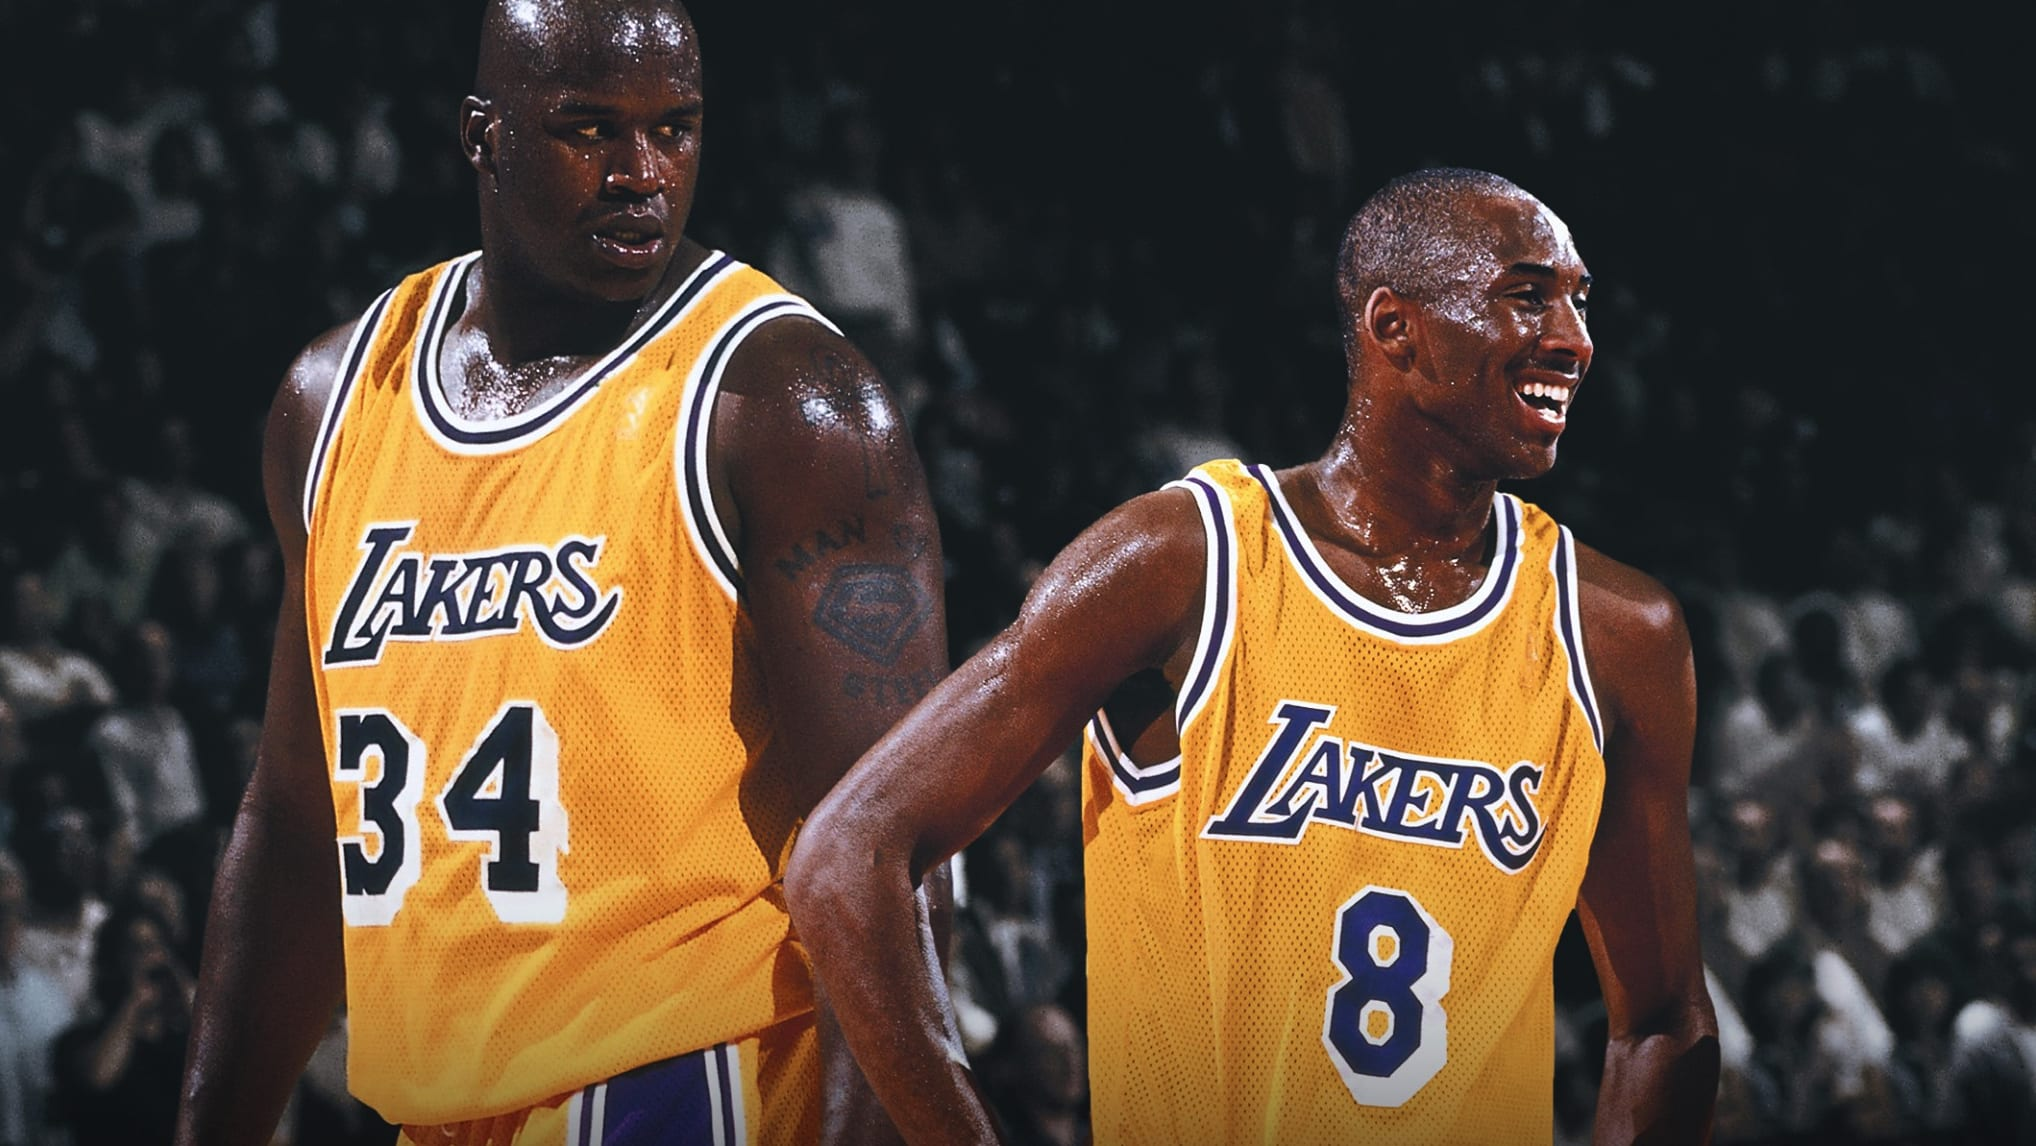 Shaq Offered Lakers Teammate $10,000 To Fight Kobe At Practice